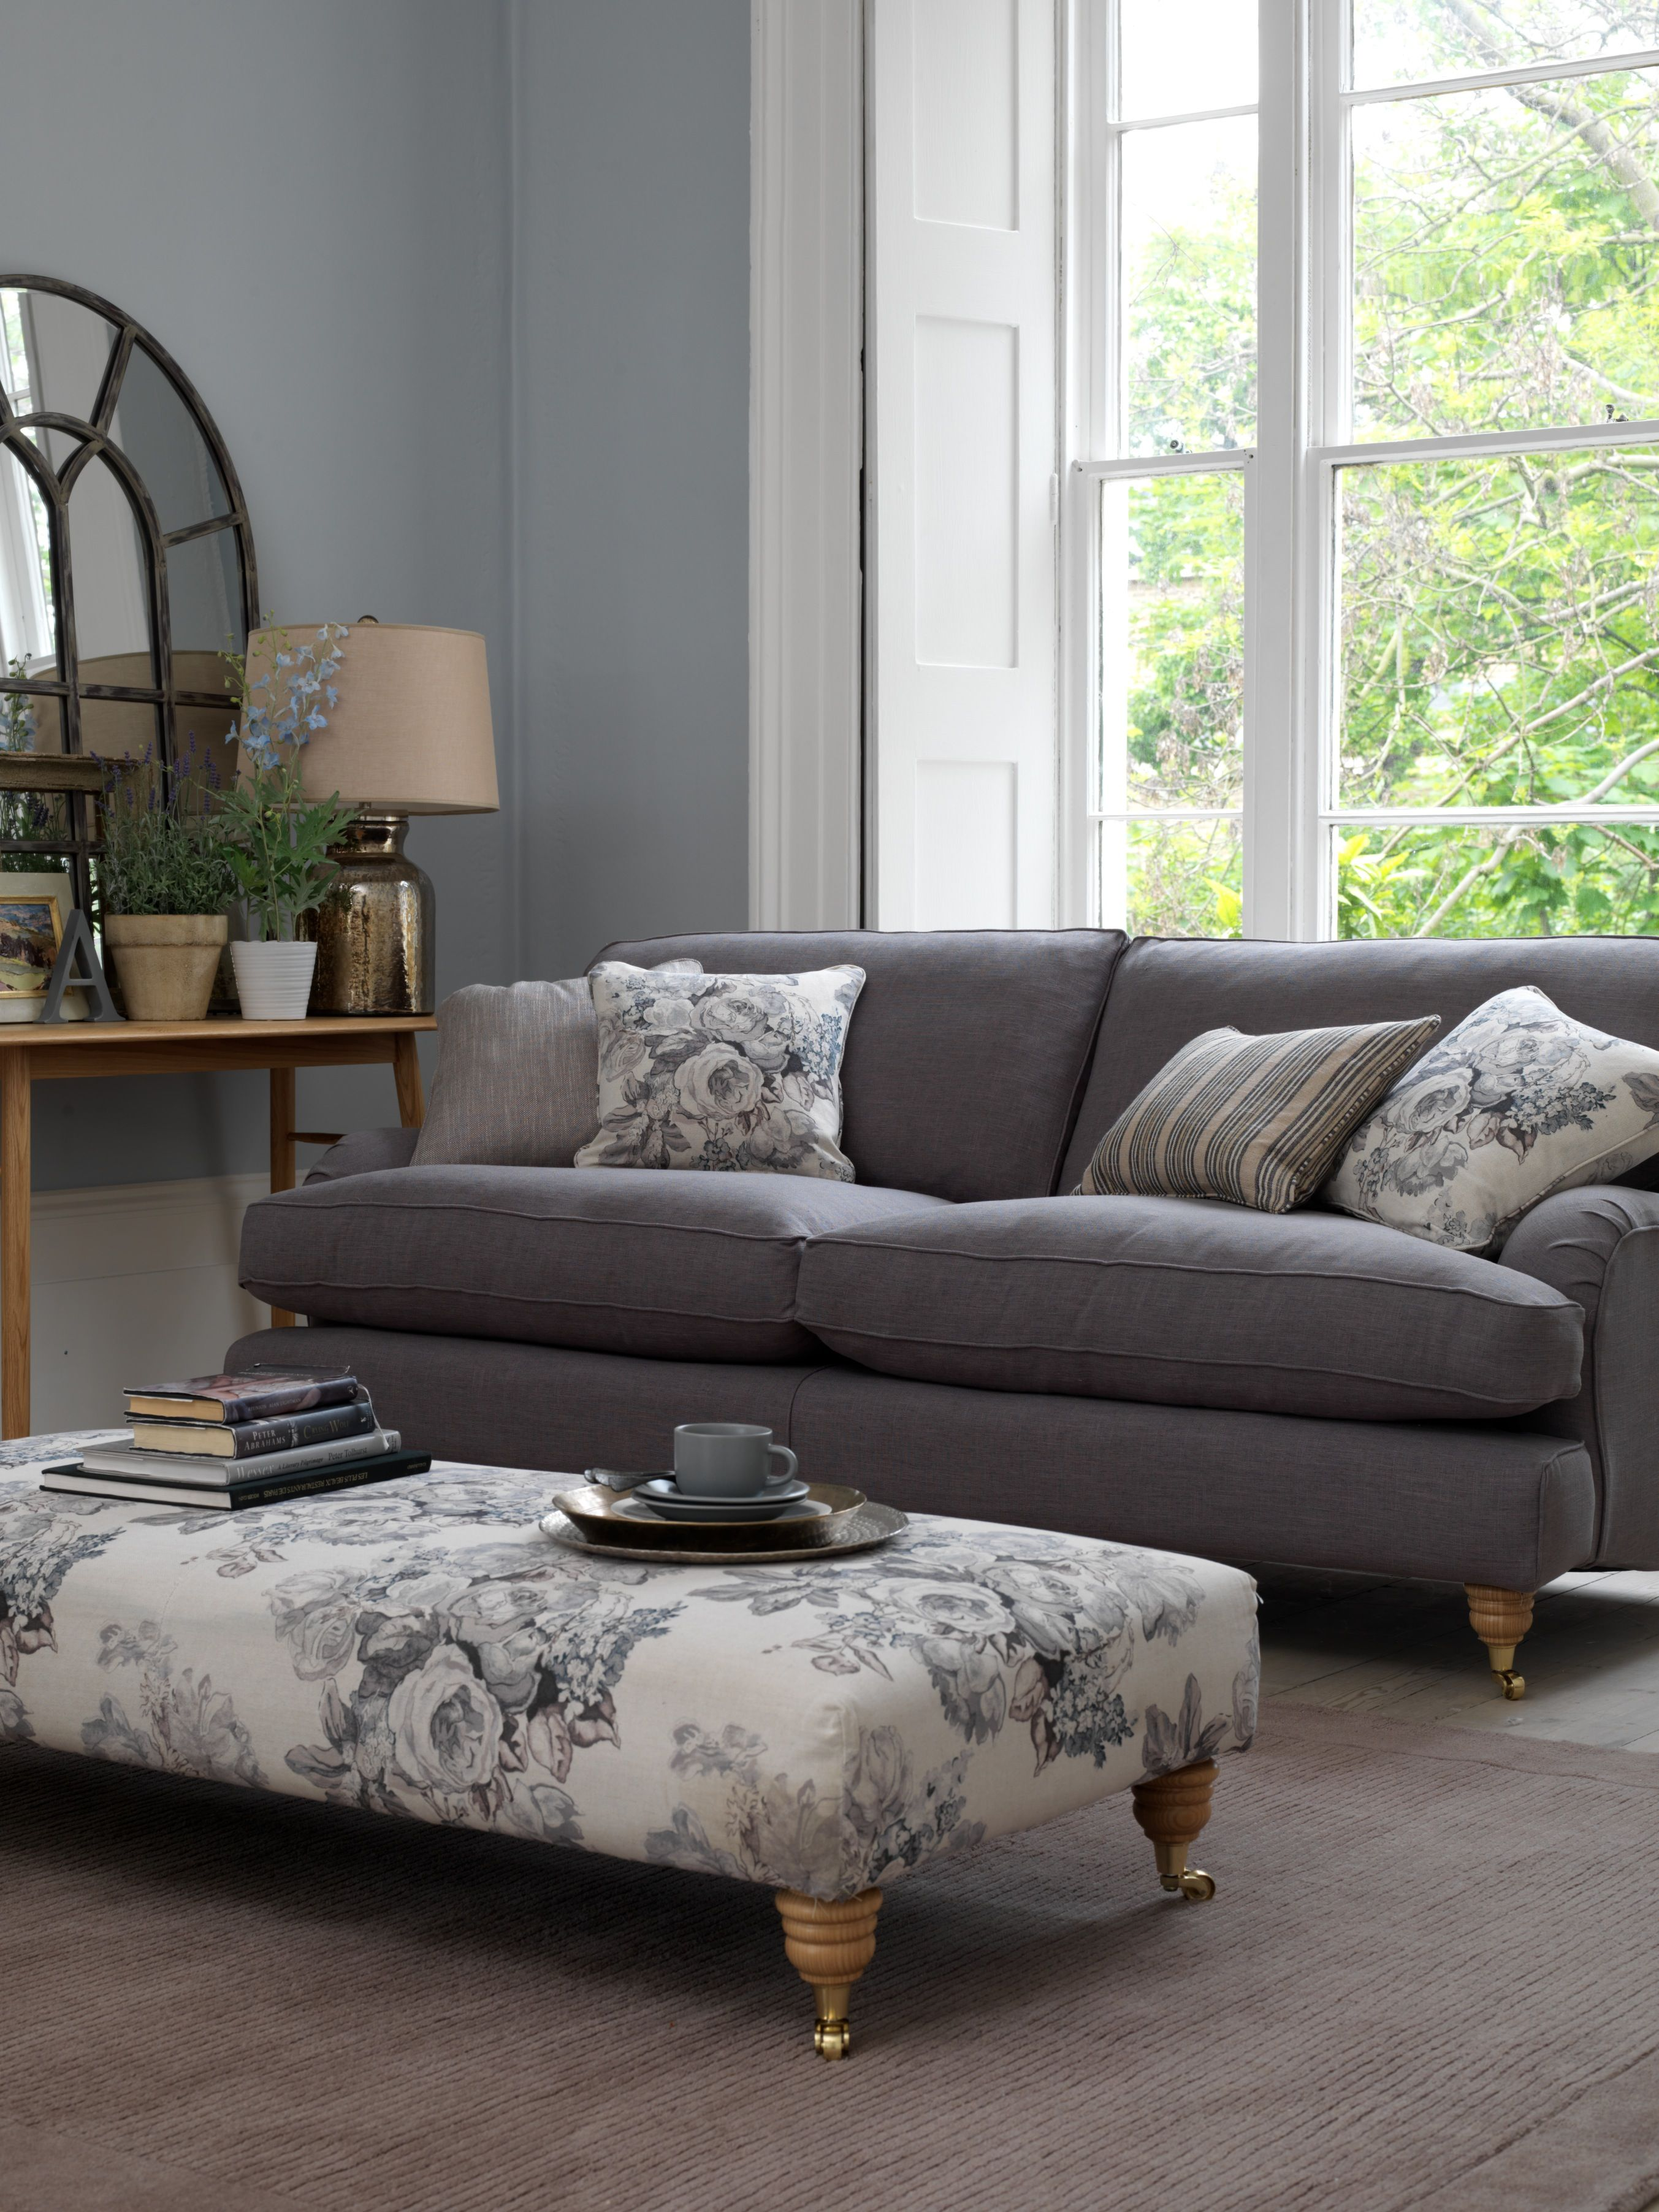 squashy sofas uk emerald sofa bed want go stay away from denim colors and textures but solid